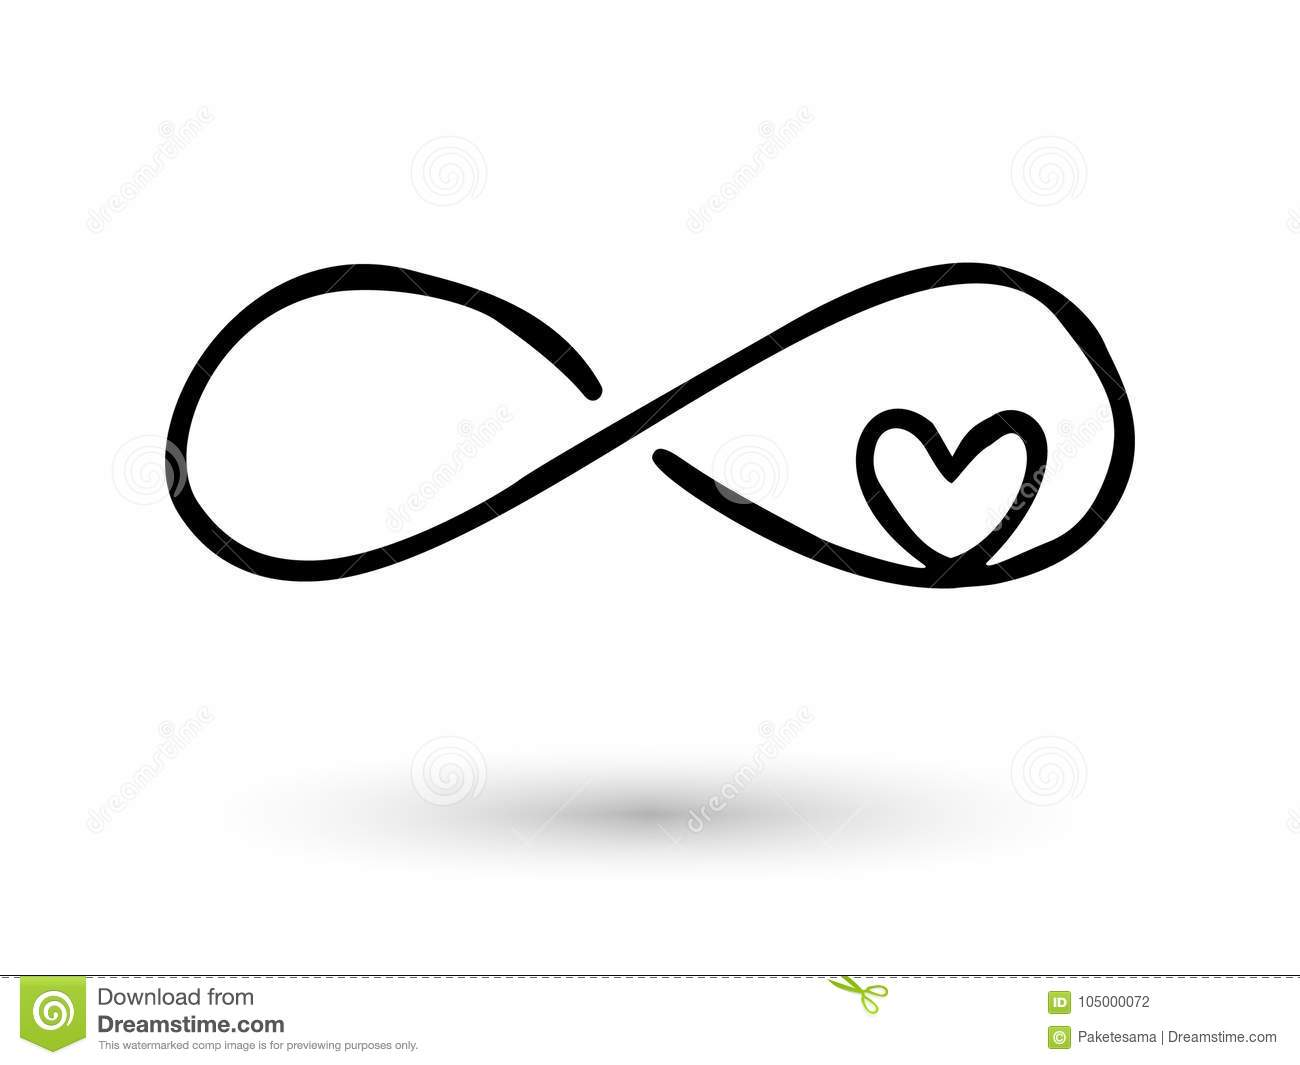 e1b5caae69e01 Infinity Symbol Hand Drawn With Ink Brush Stock Vector ...